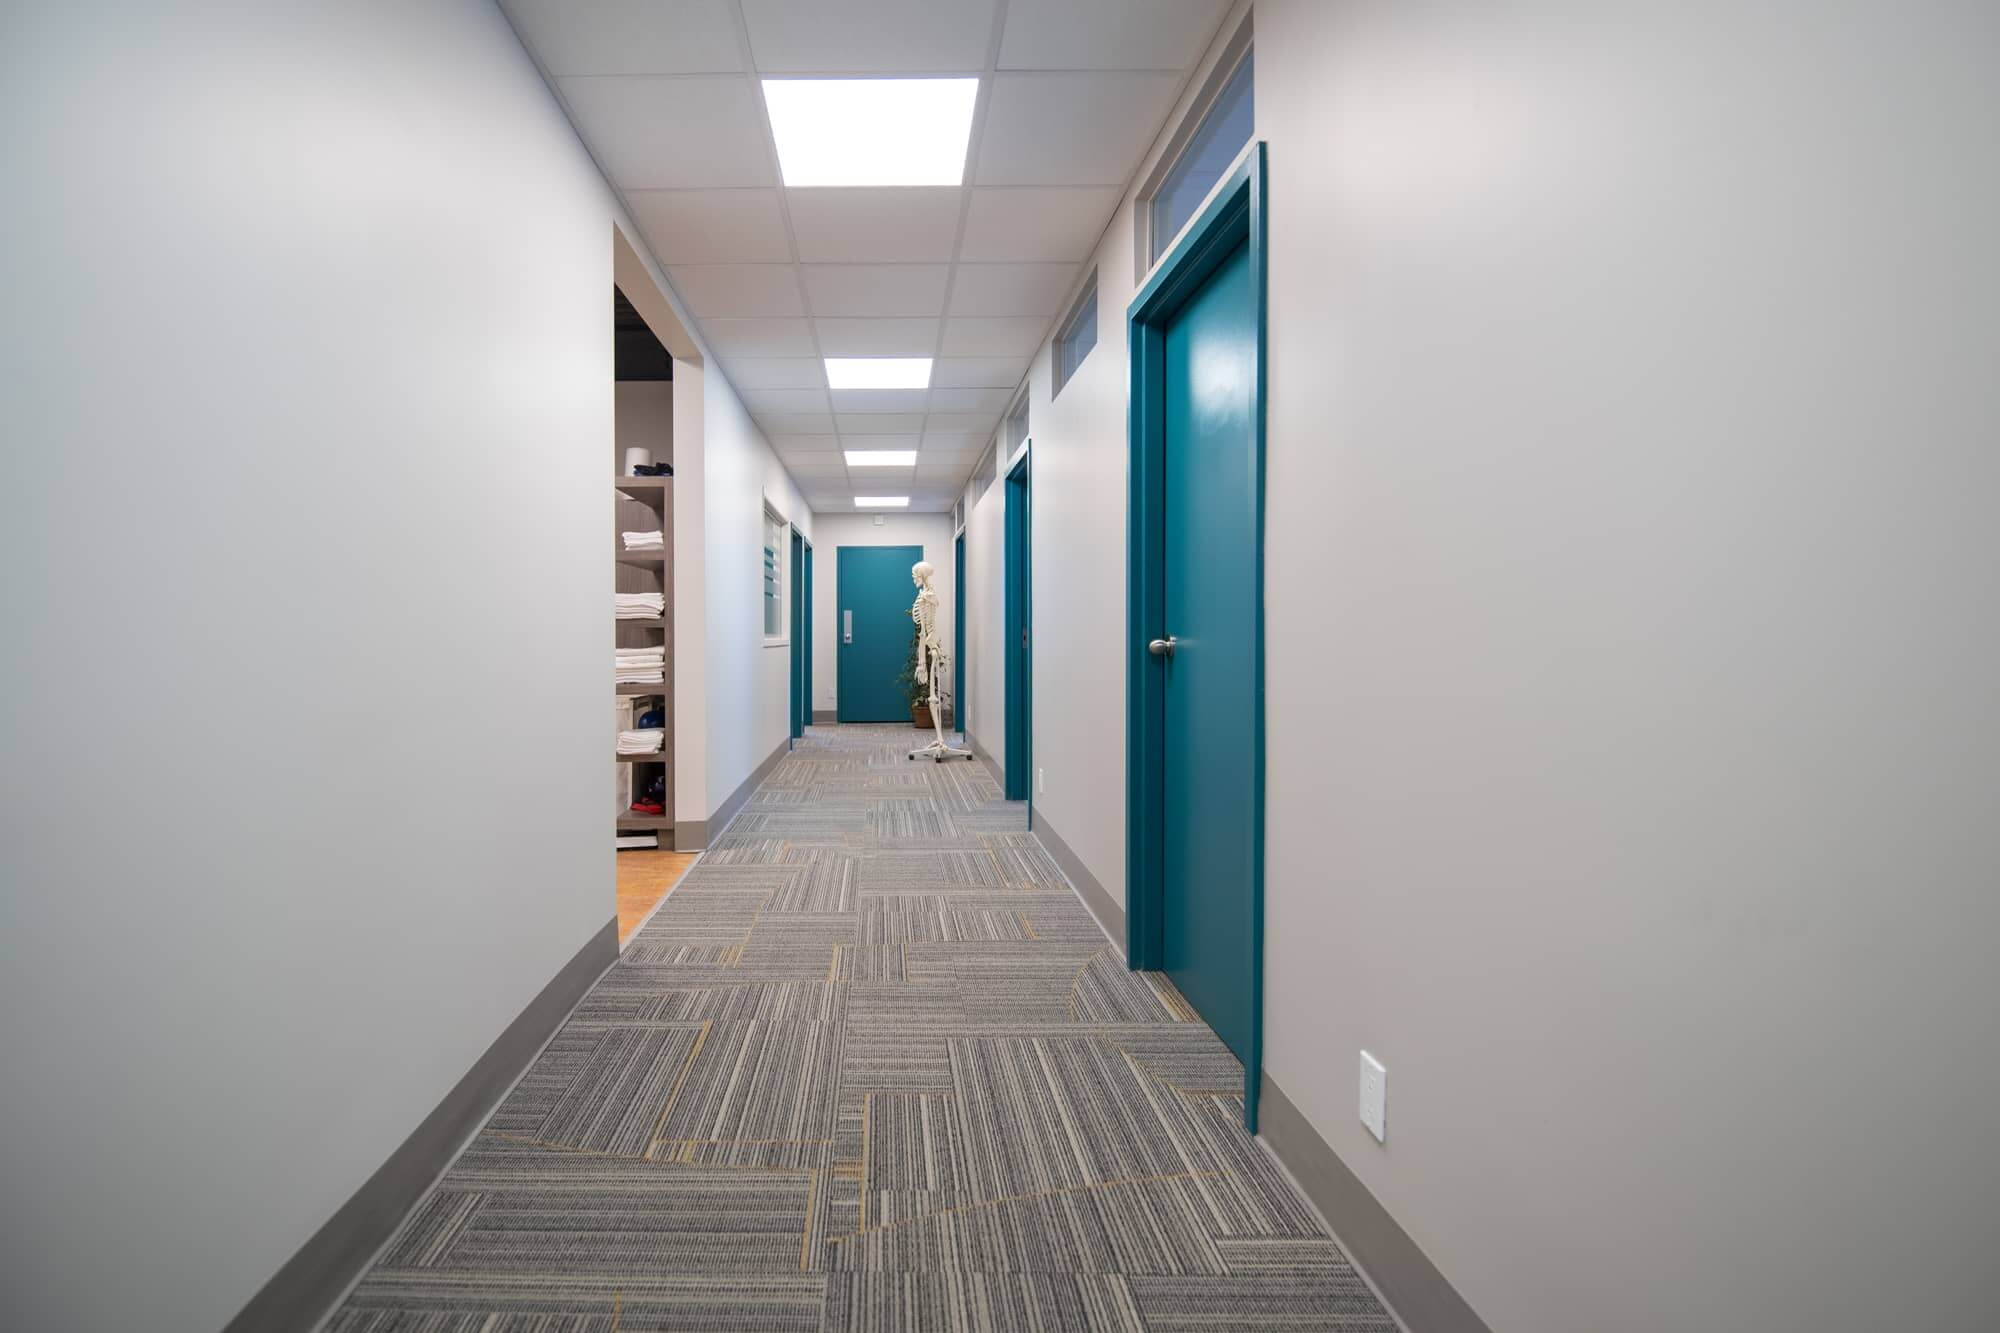 New corridor with commercial carpet and turquoise doors in a clinic